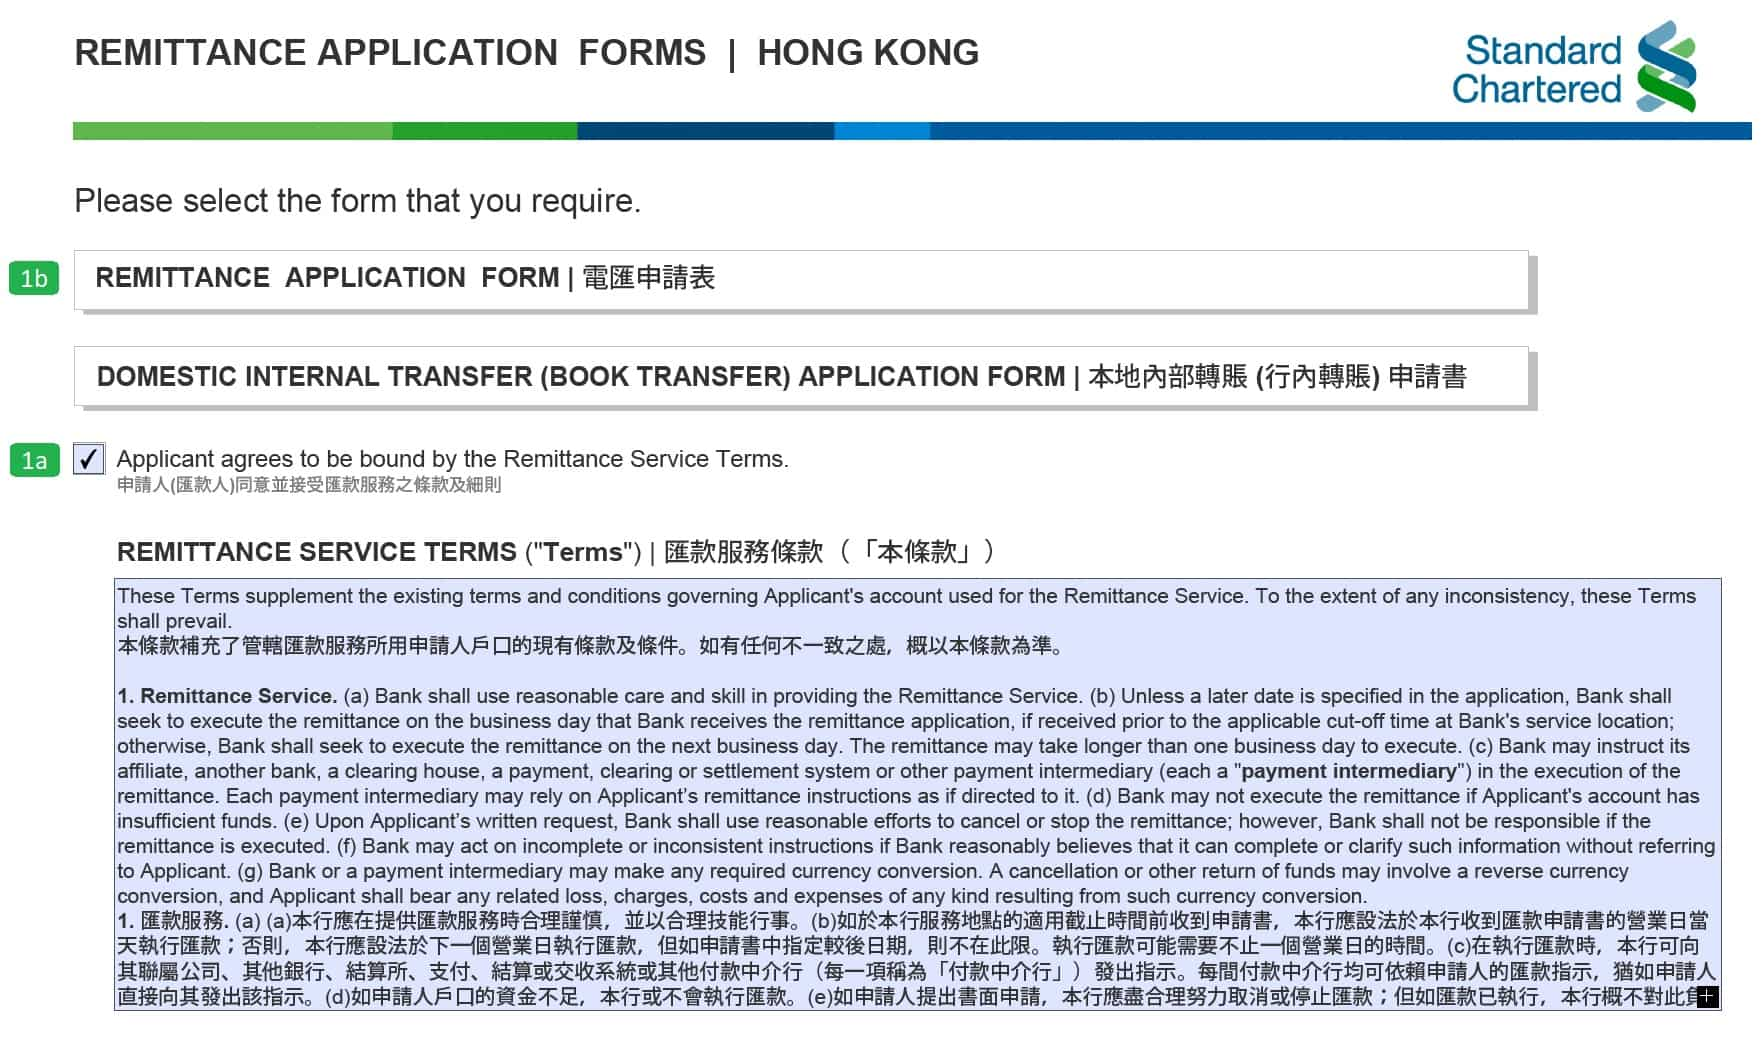 scb overseas remittance application form